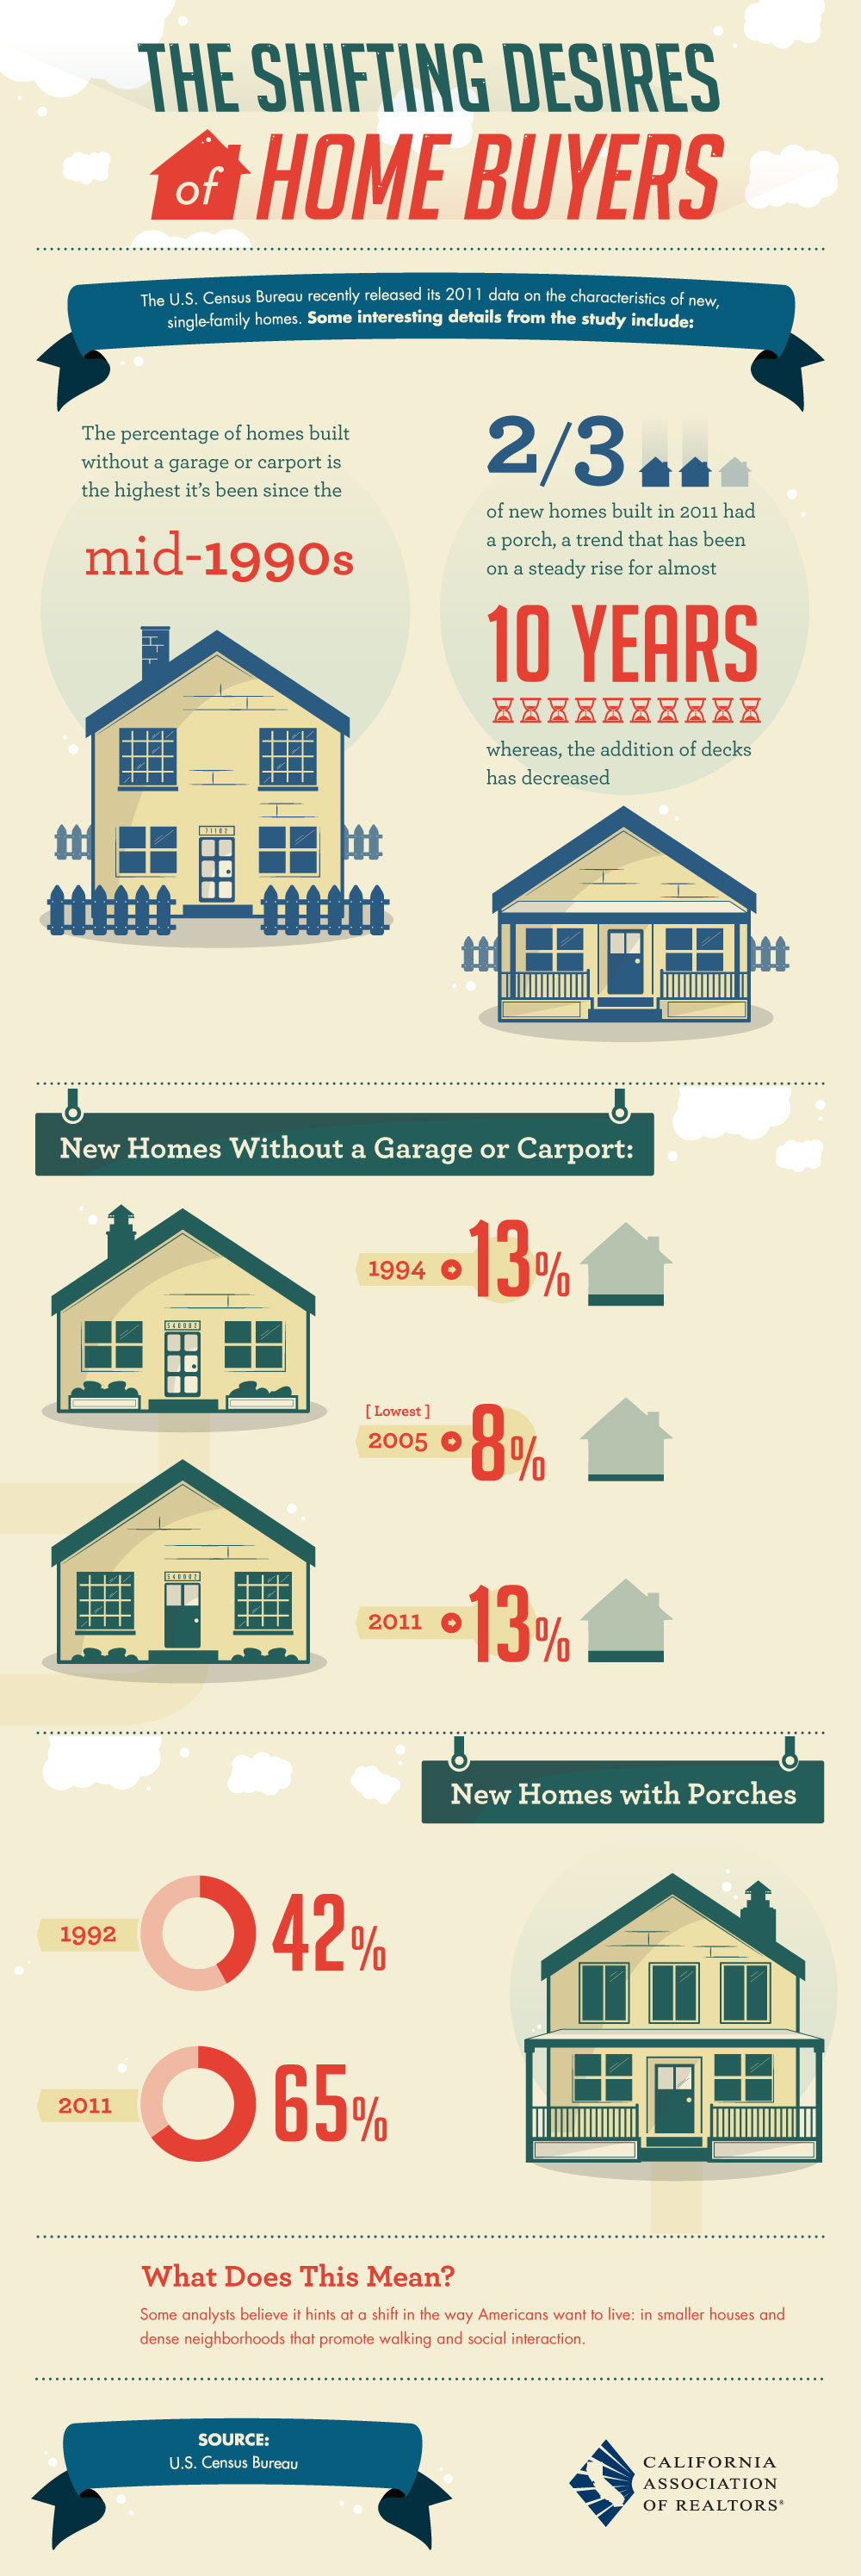 What Buyers Want in a Home